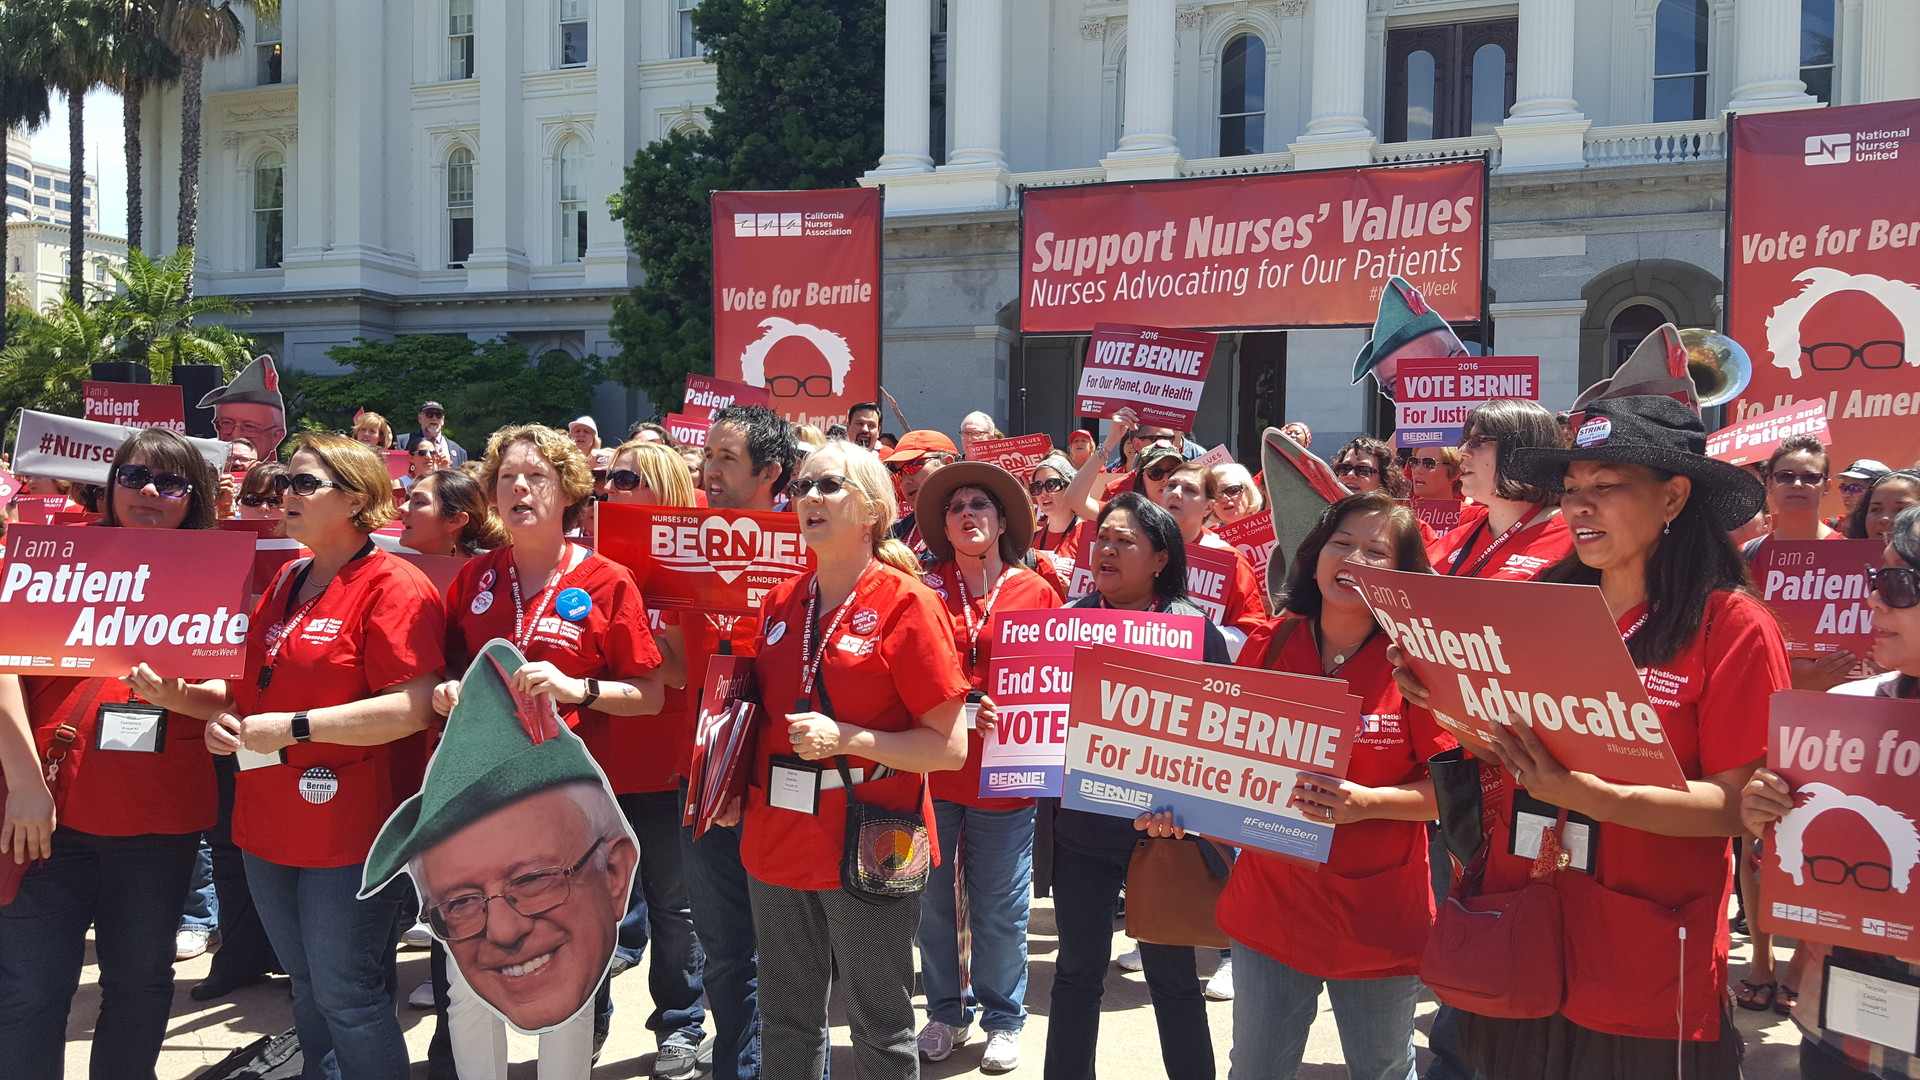 Members of the California Nurses Association and National Nurses United rally for Sen. Bernie Sanders outside the California Capitol on Wednesday, May 11, 2016.